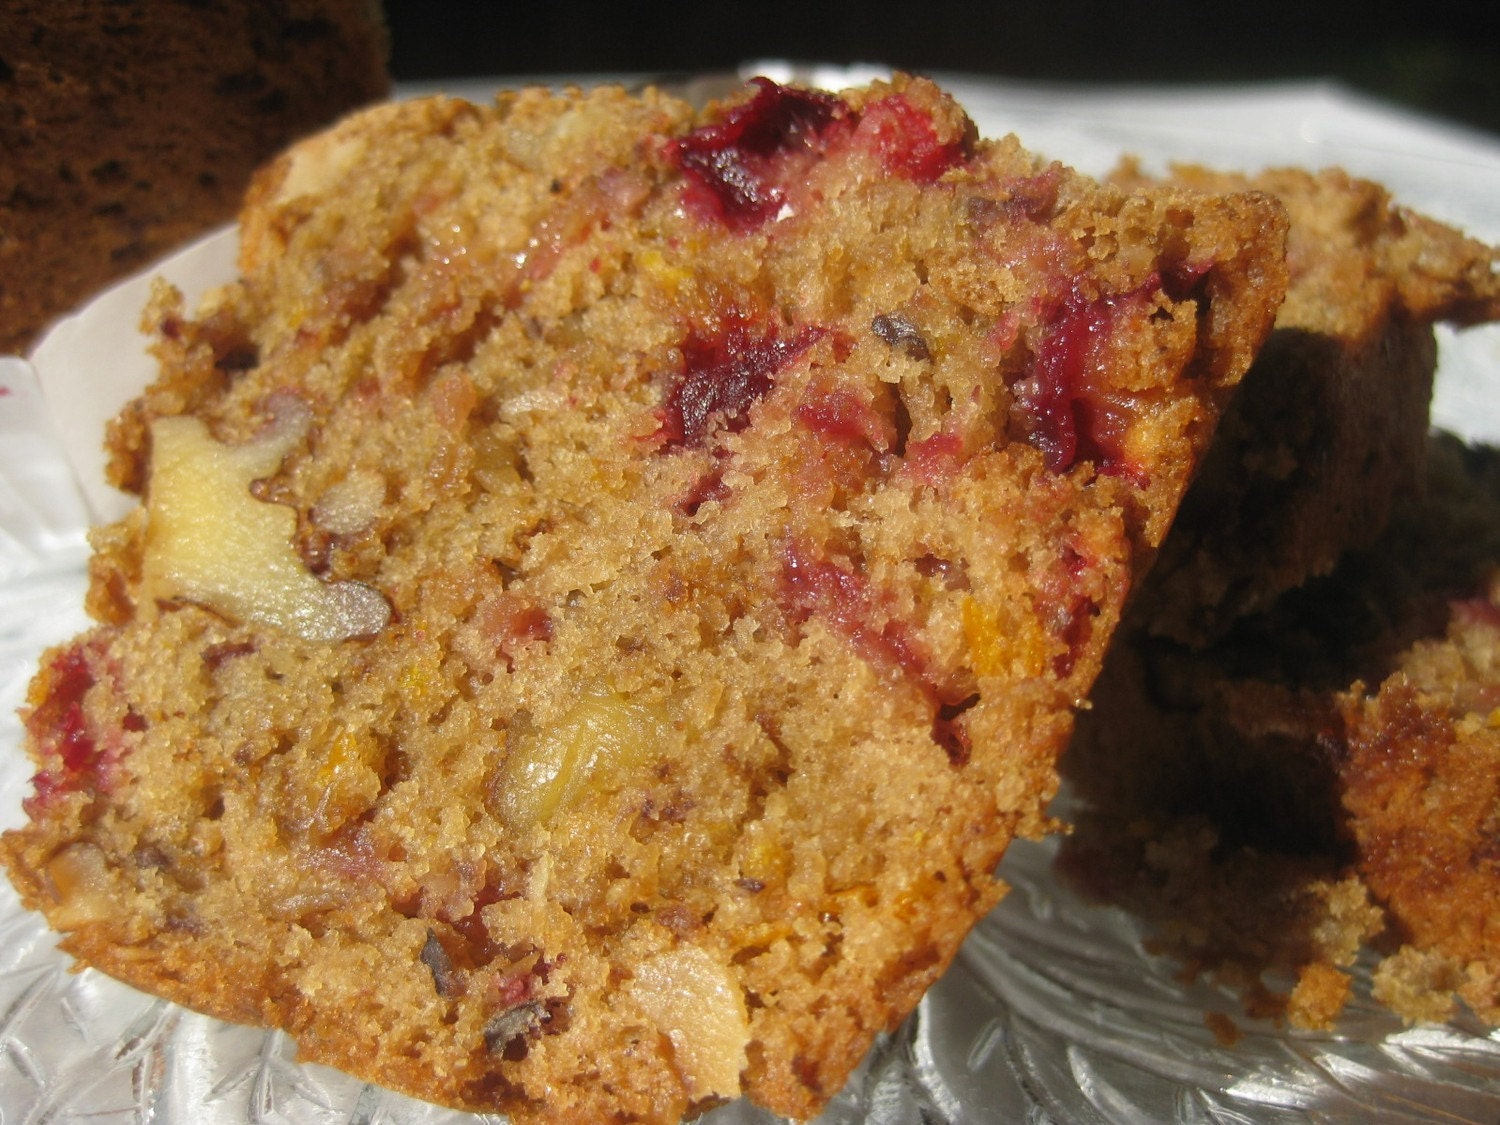 Cranberry Nut Bread to Die For - 2 Mini-Loaves